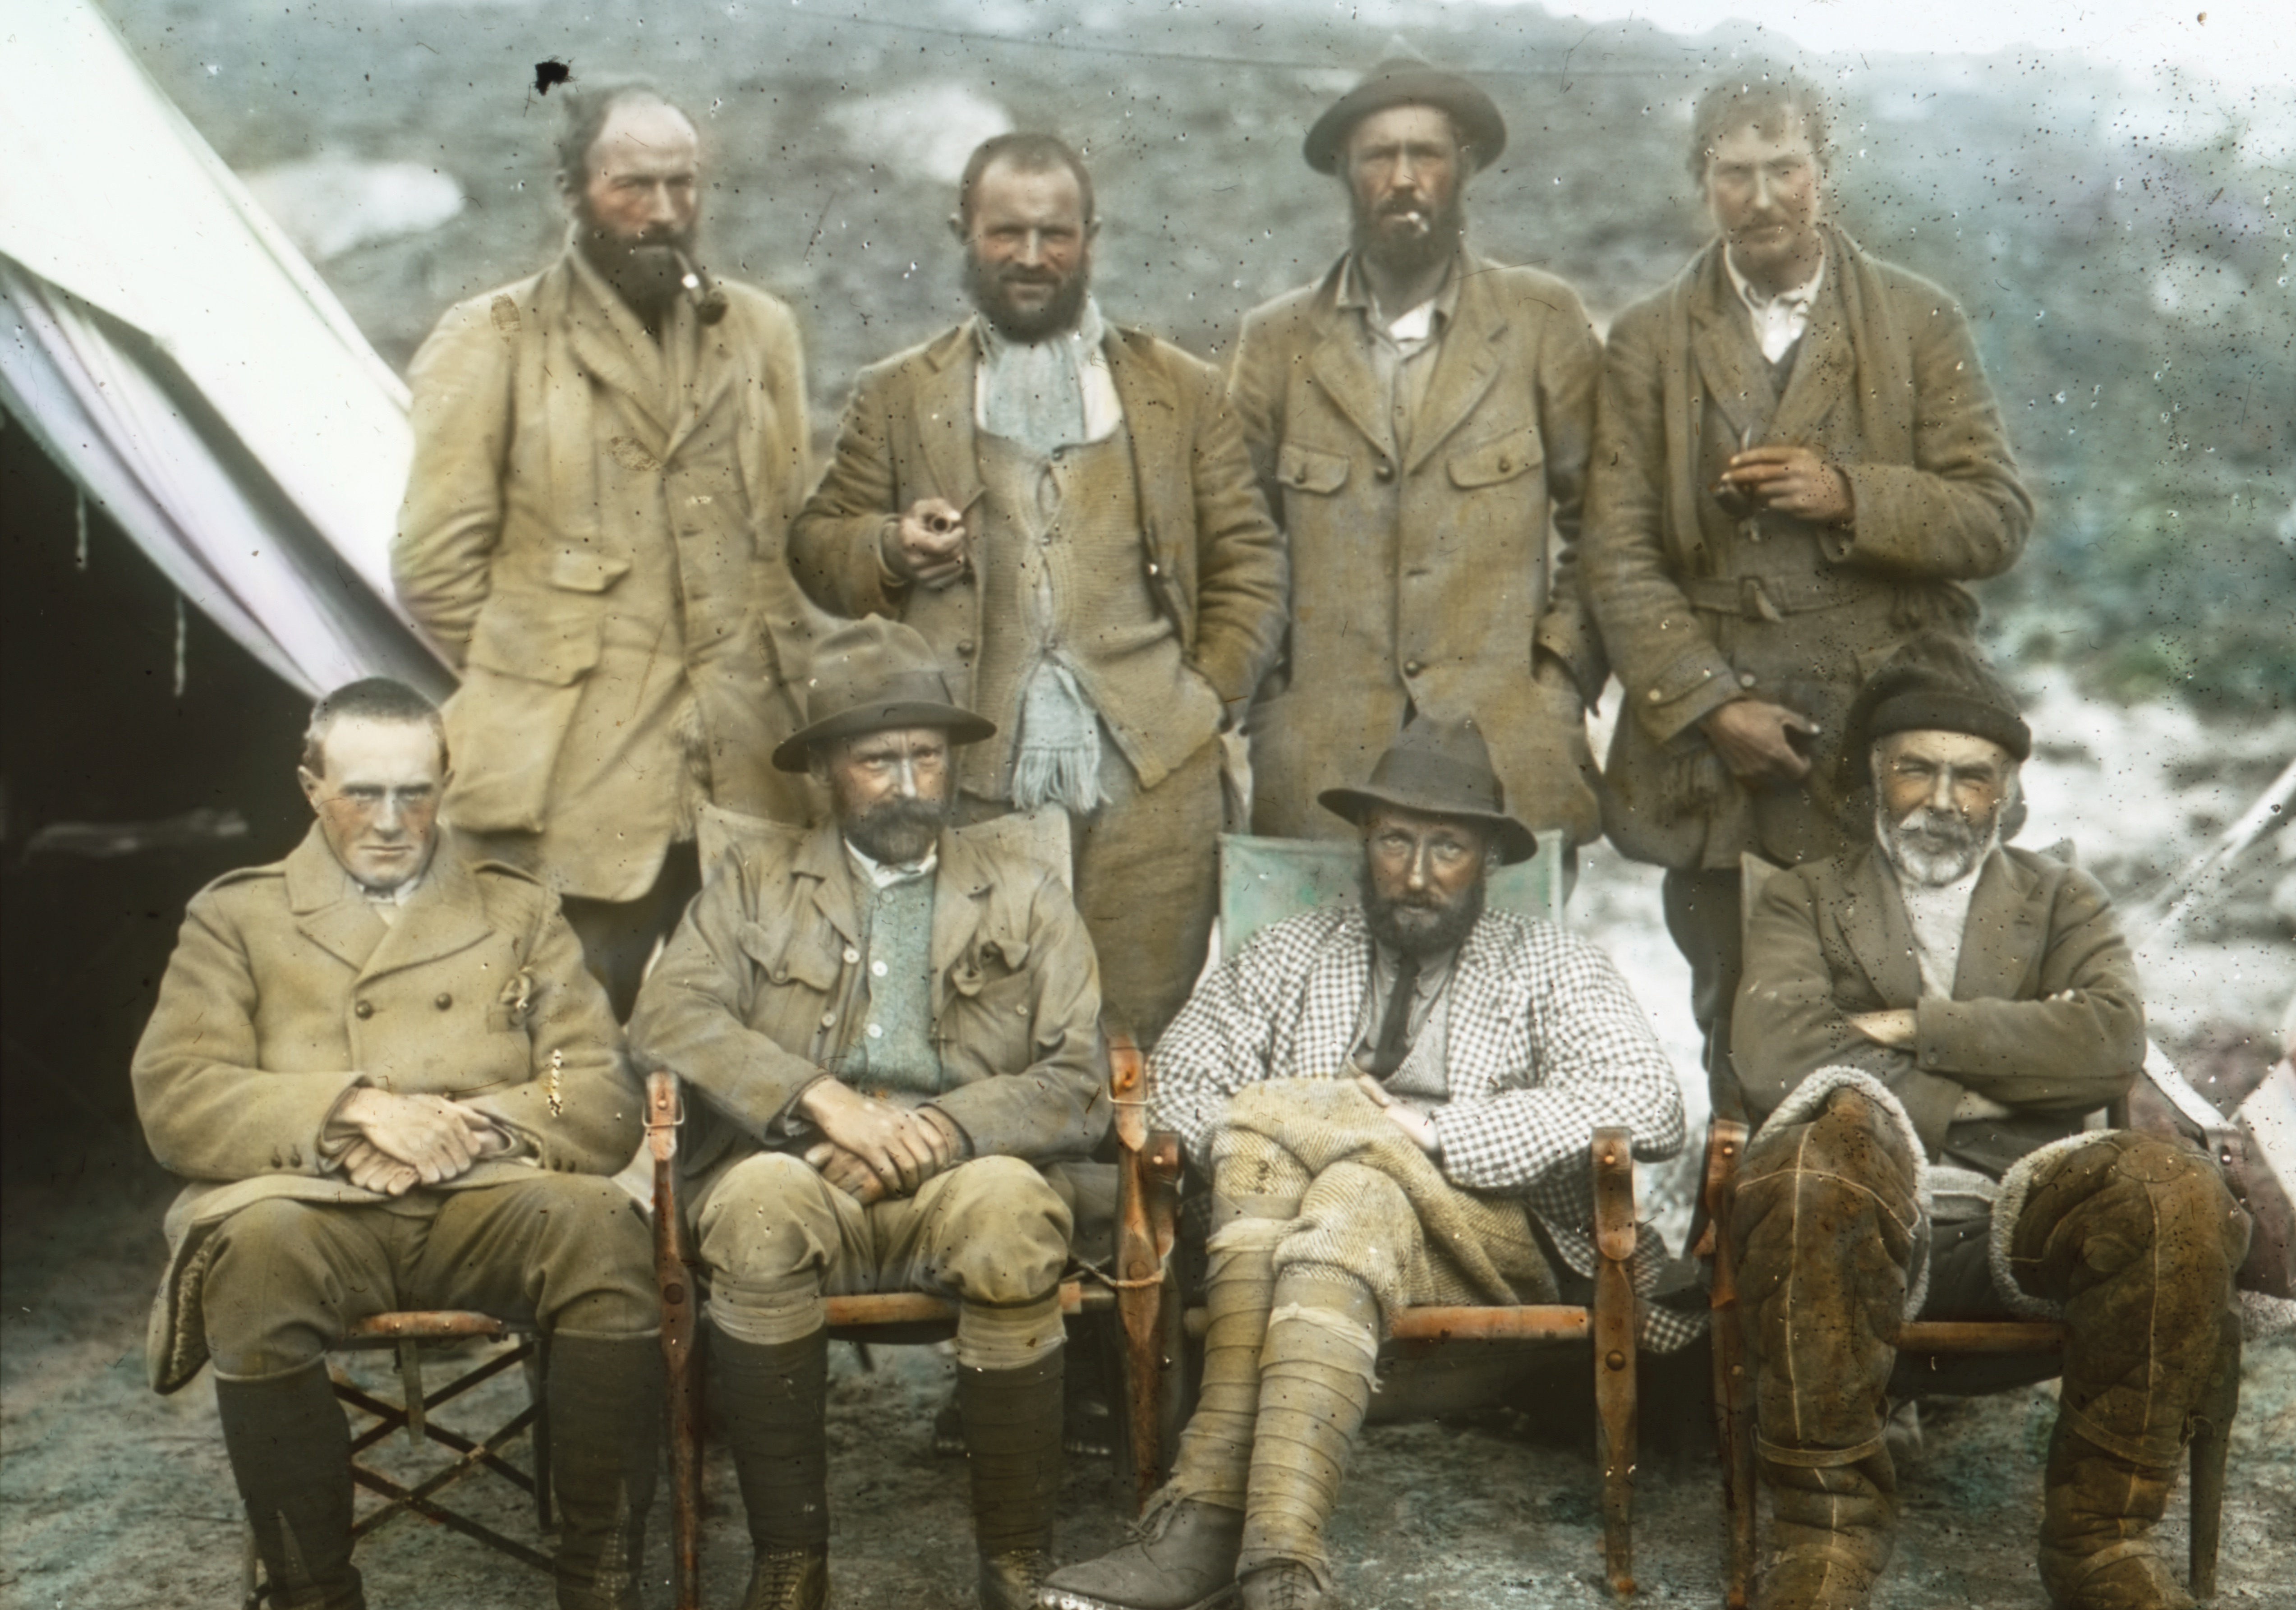 1921 Everest expedition team